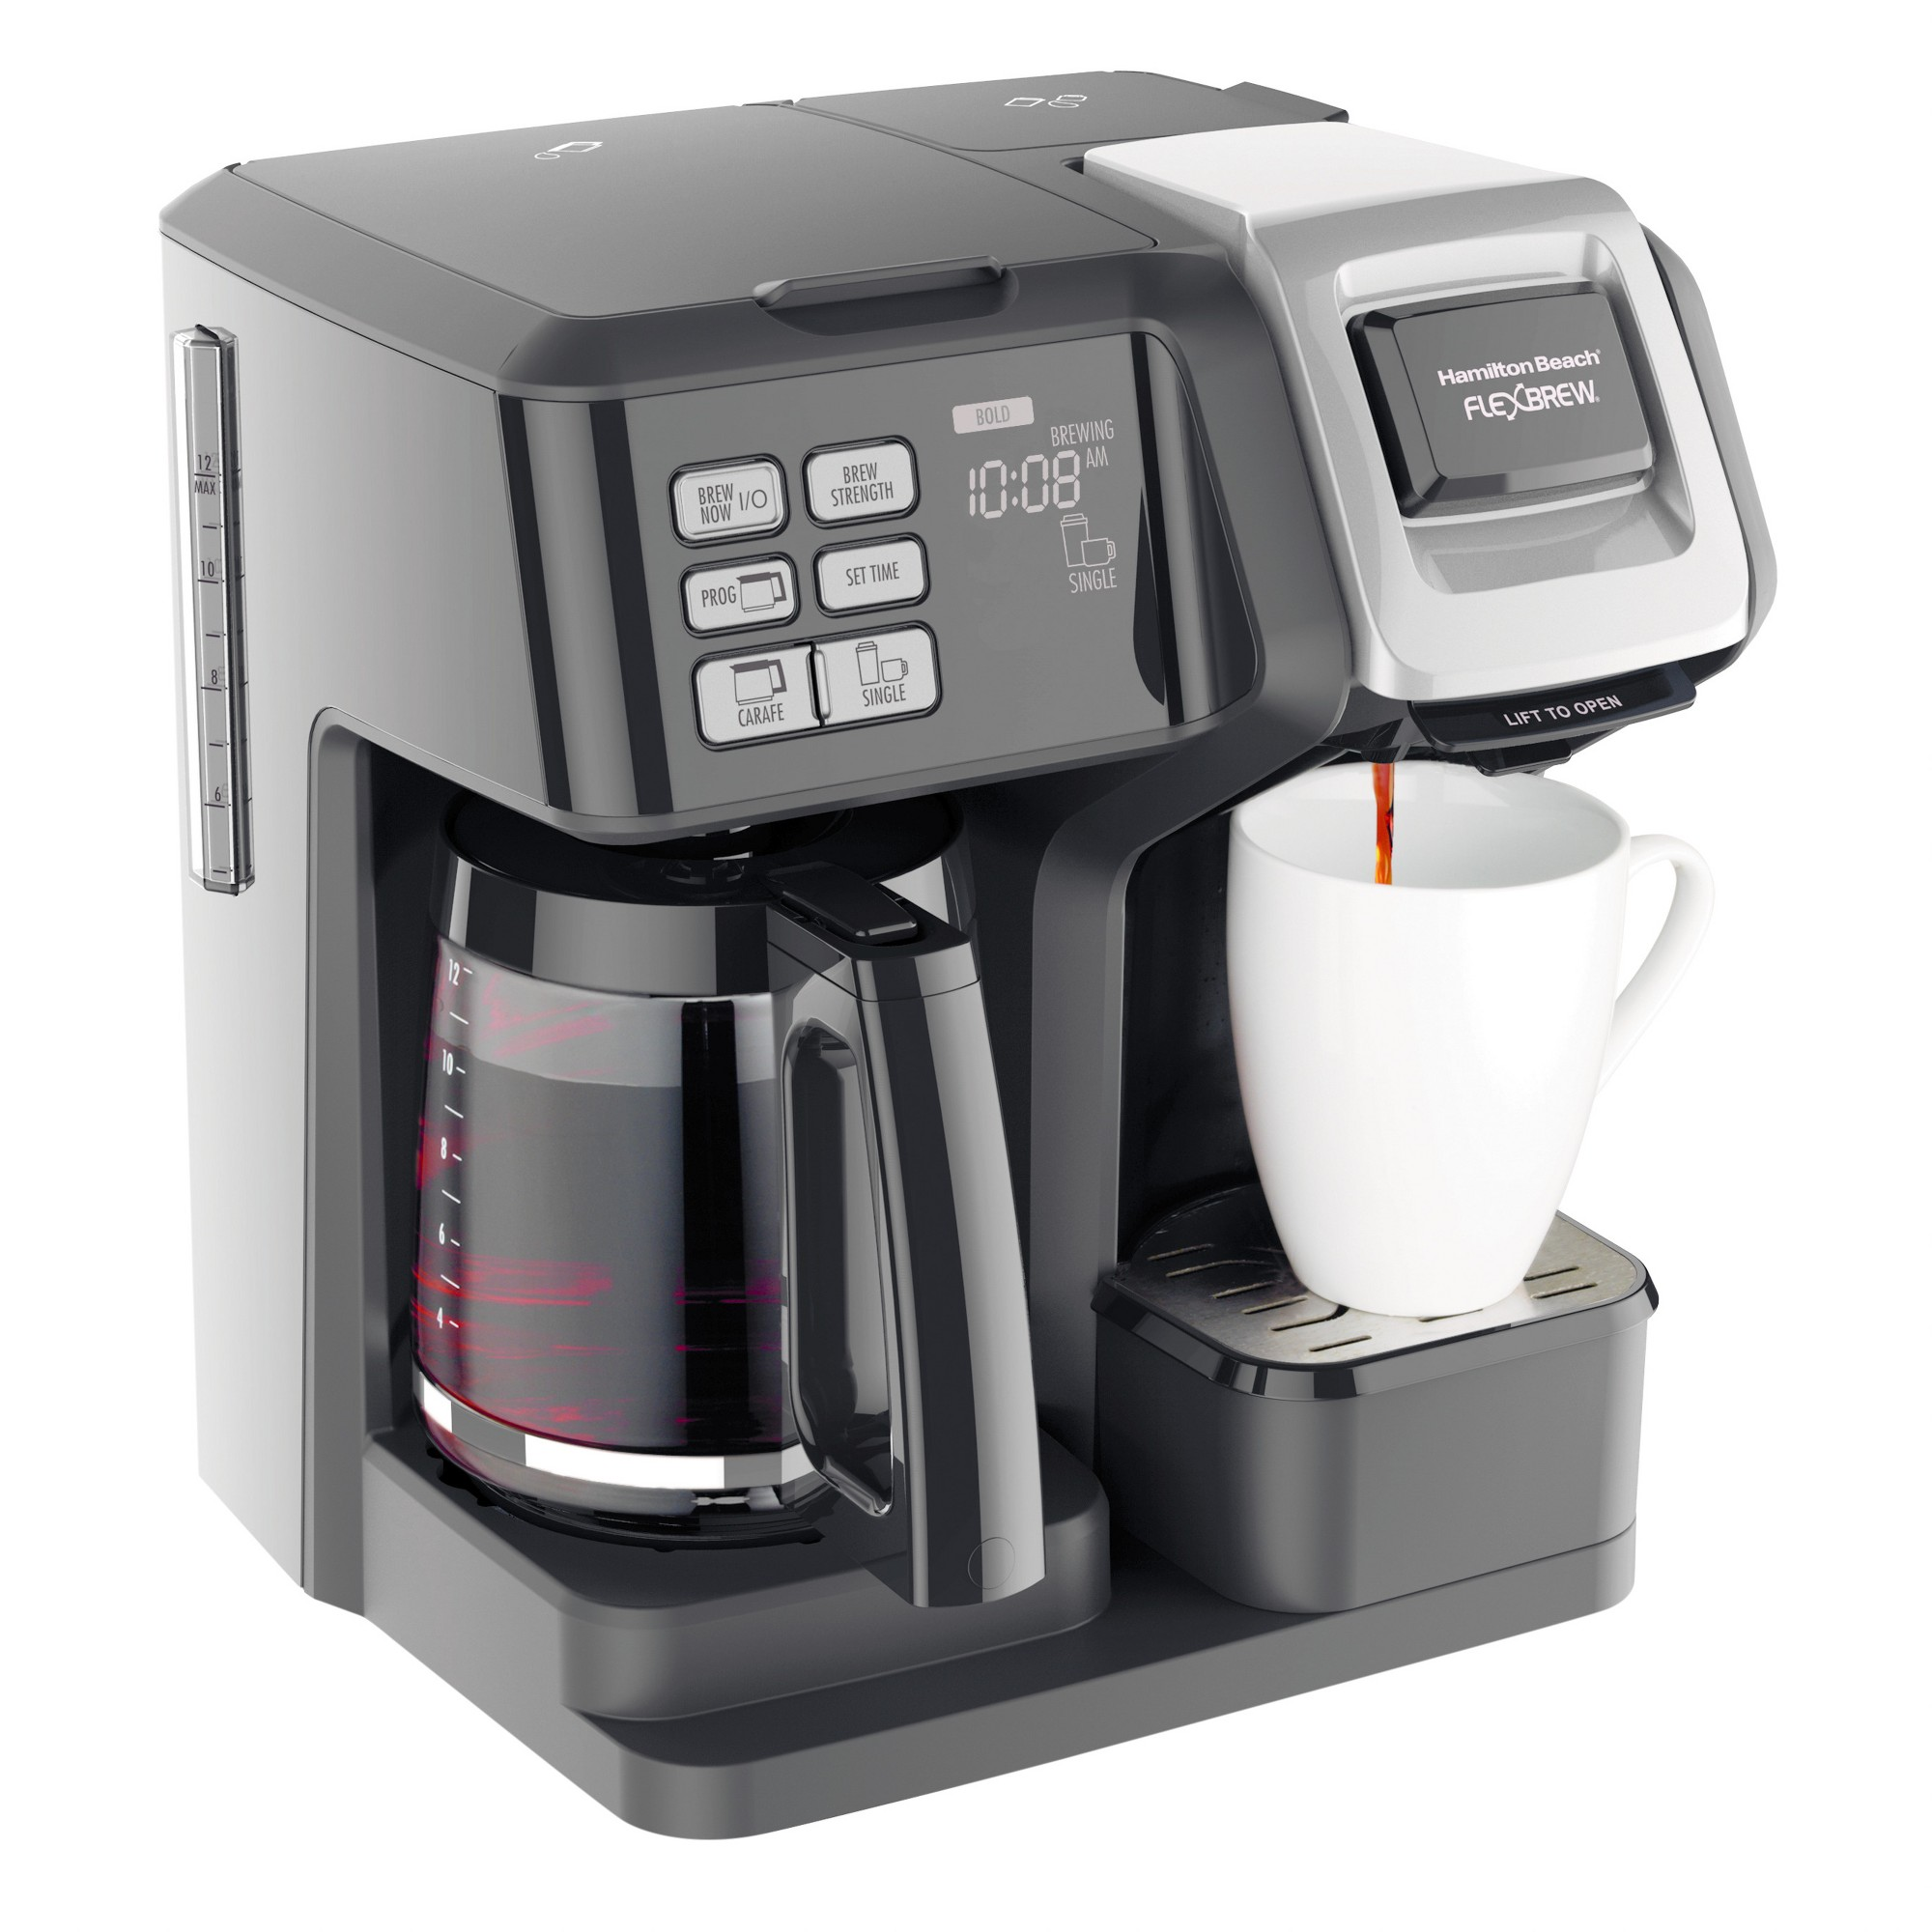 Mr. Coffee 4Cup Programmable Coffee Maker, Black, DRX5NP